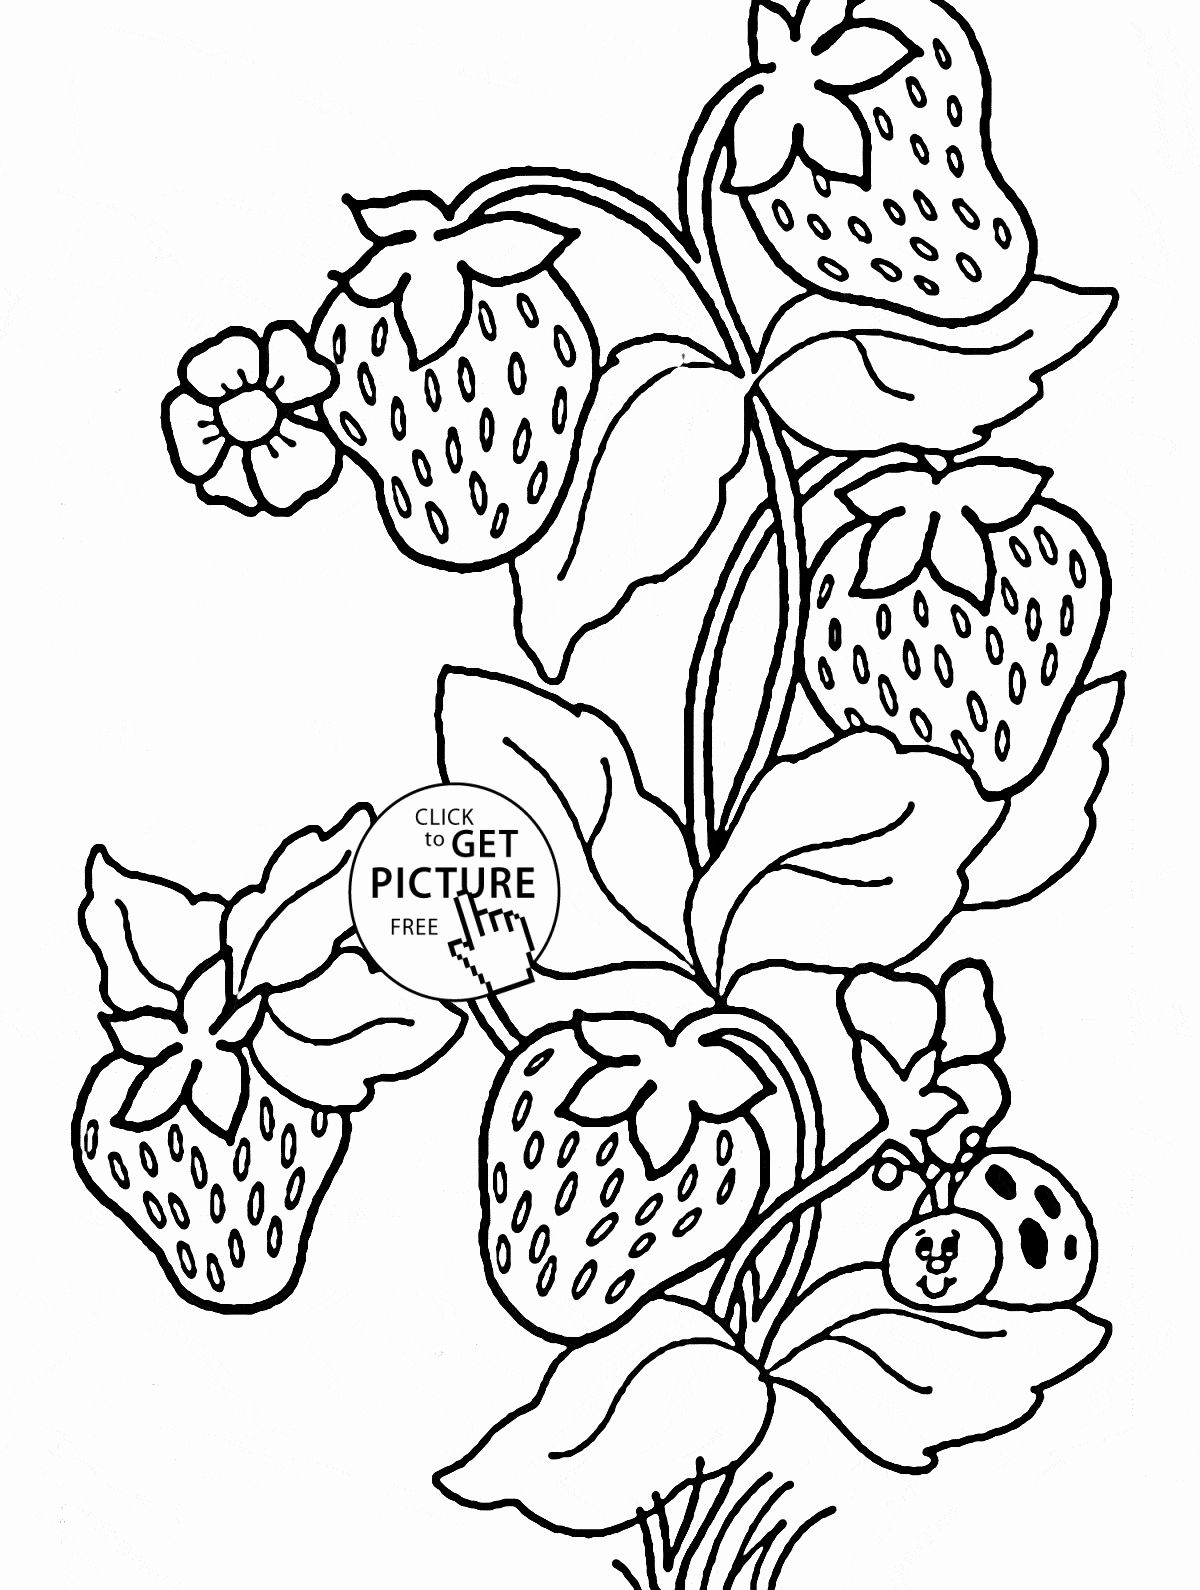 Pin By Marian Kaluza On Designs Flower Coloring Sheets Apple Coloring Pages Animal Coloring Pages